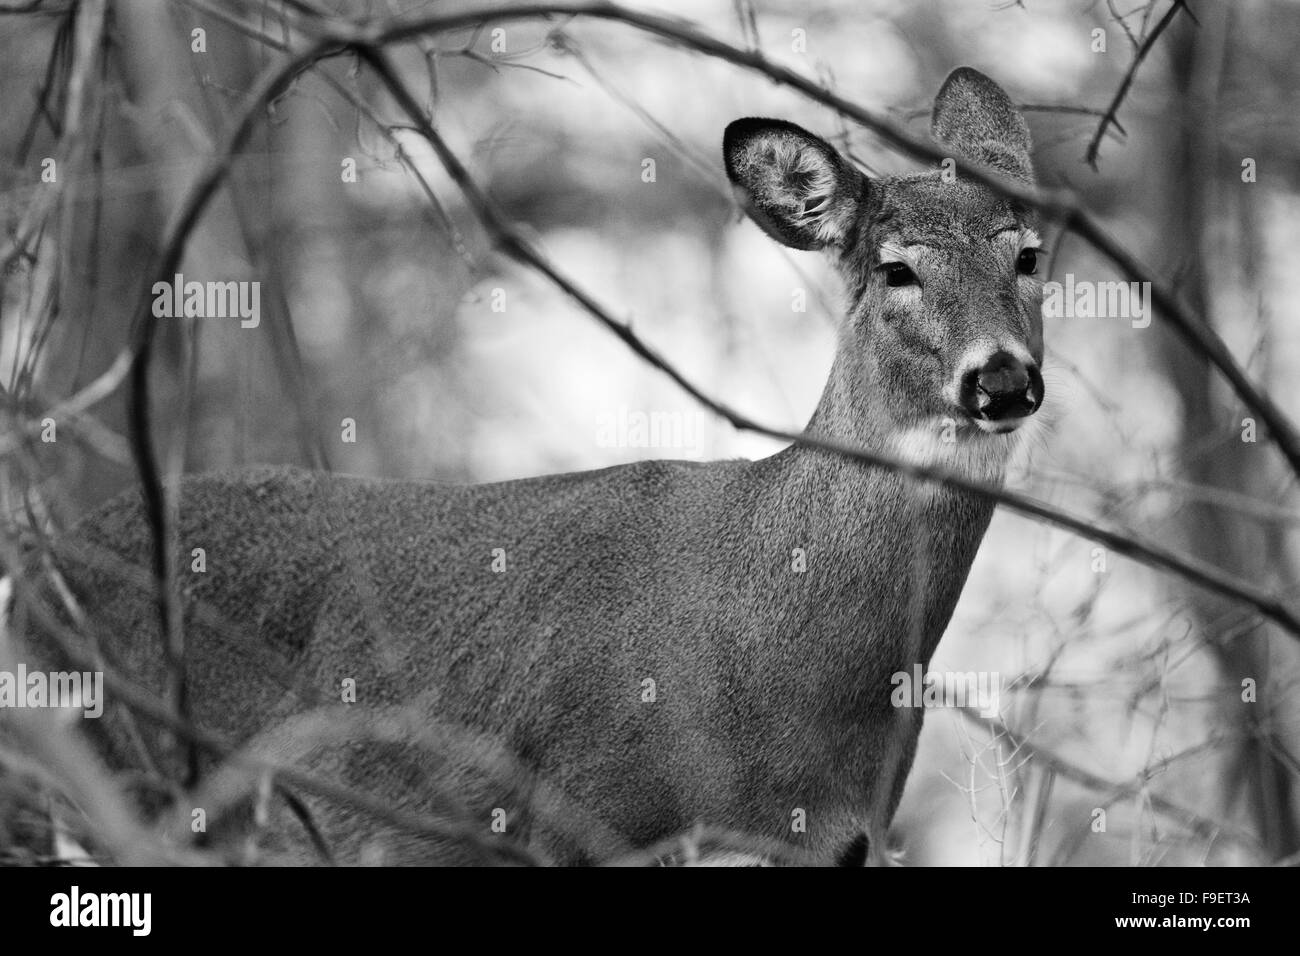 Black and white image with the deer in the shrub Stock Photo